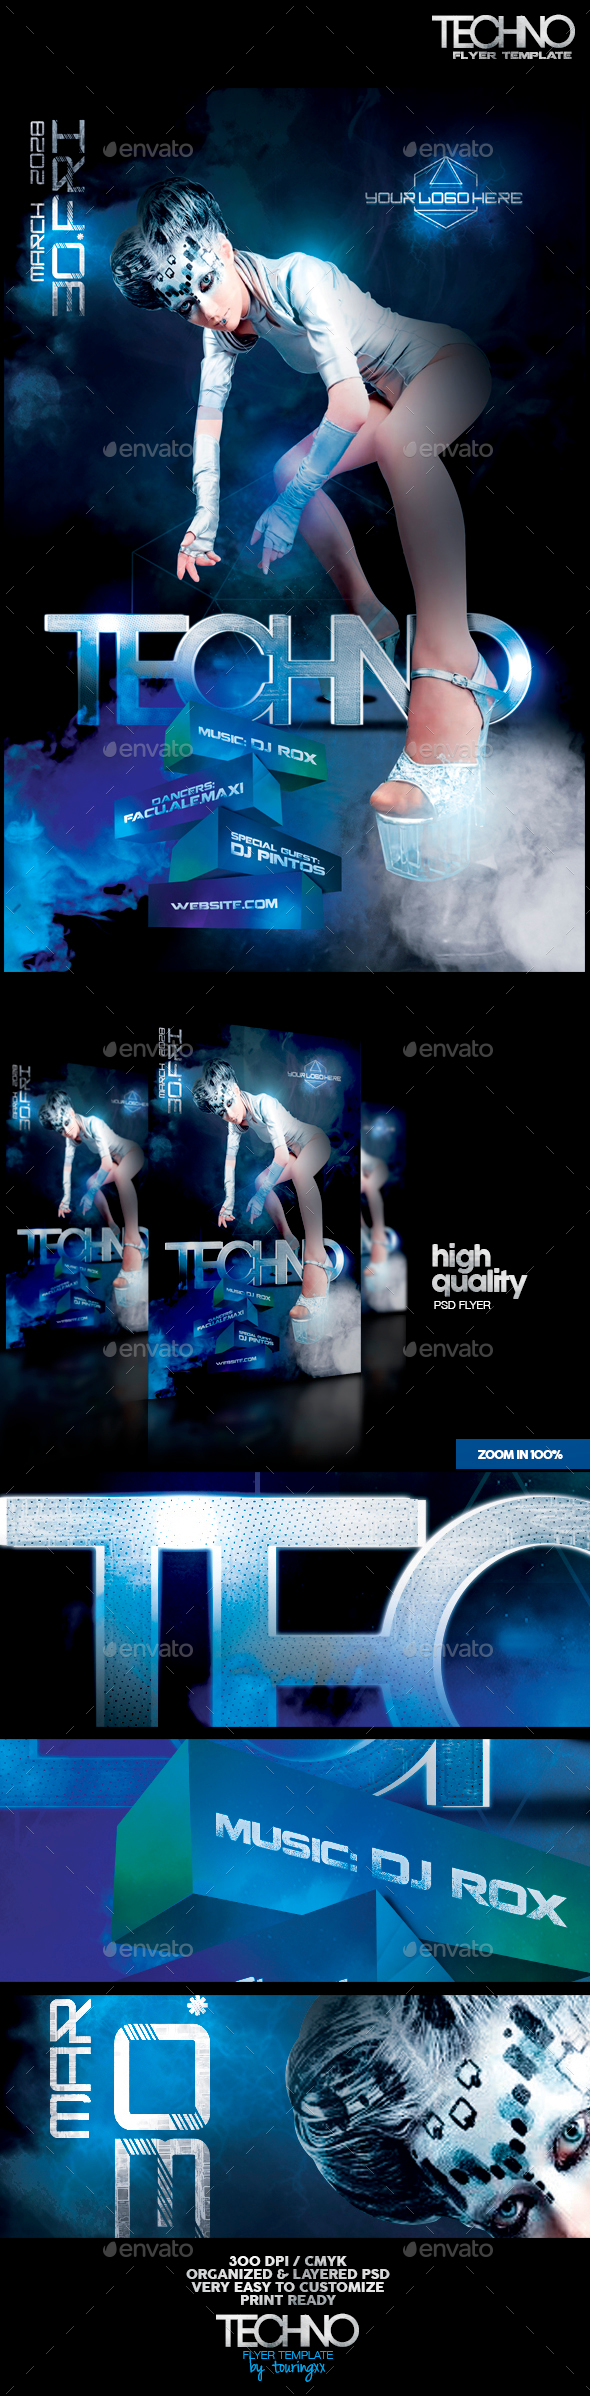 Techno Flyer Template - Clubs & Parties Events